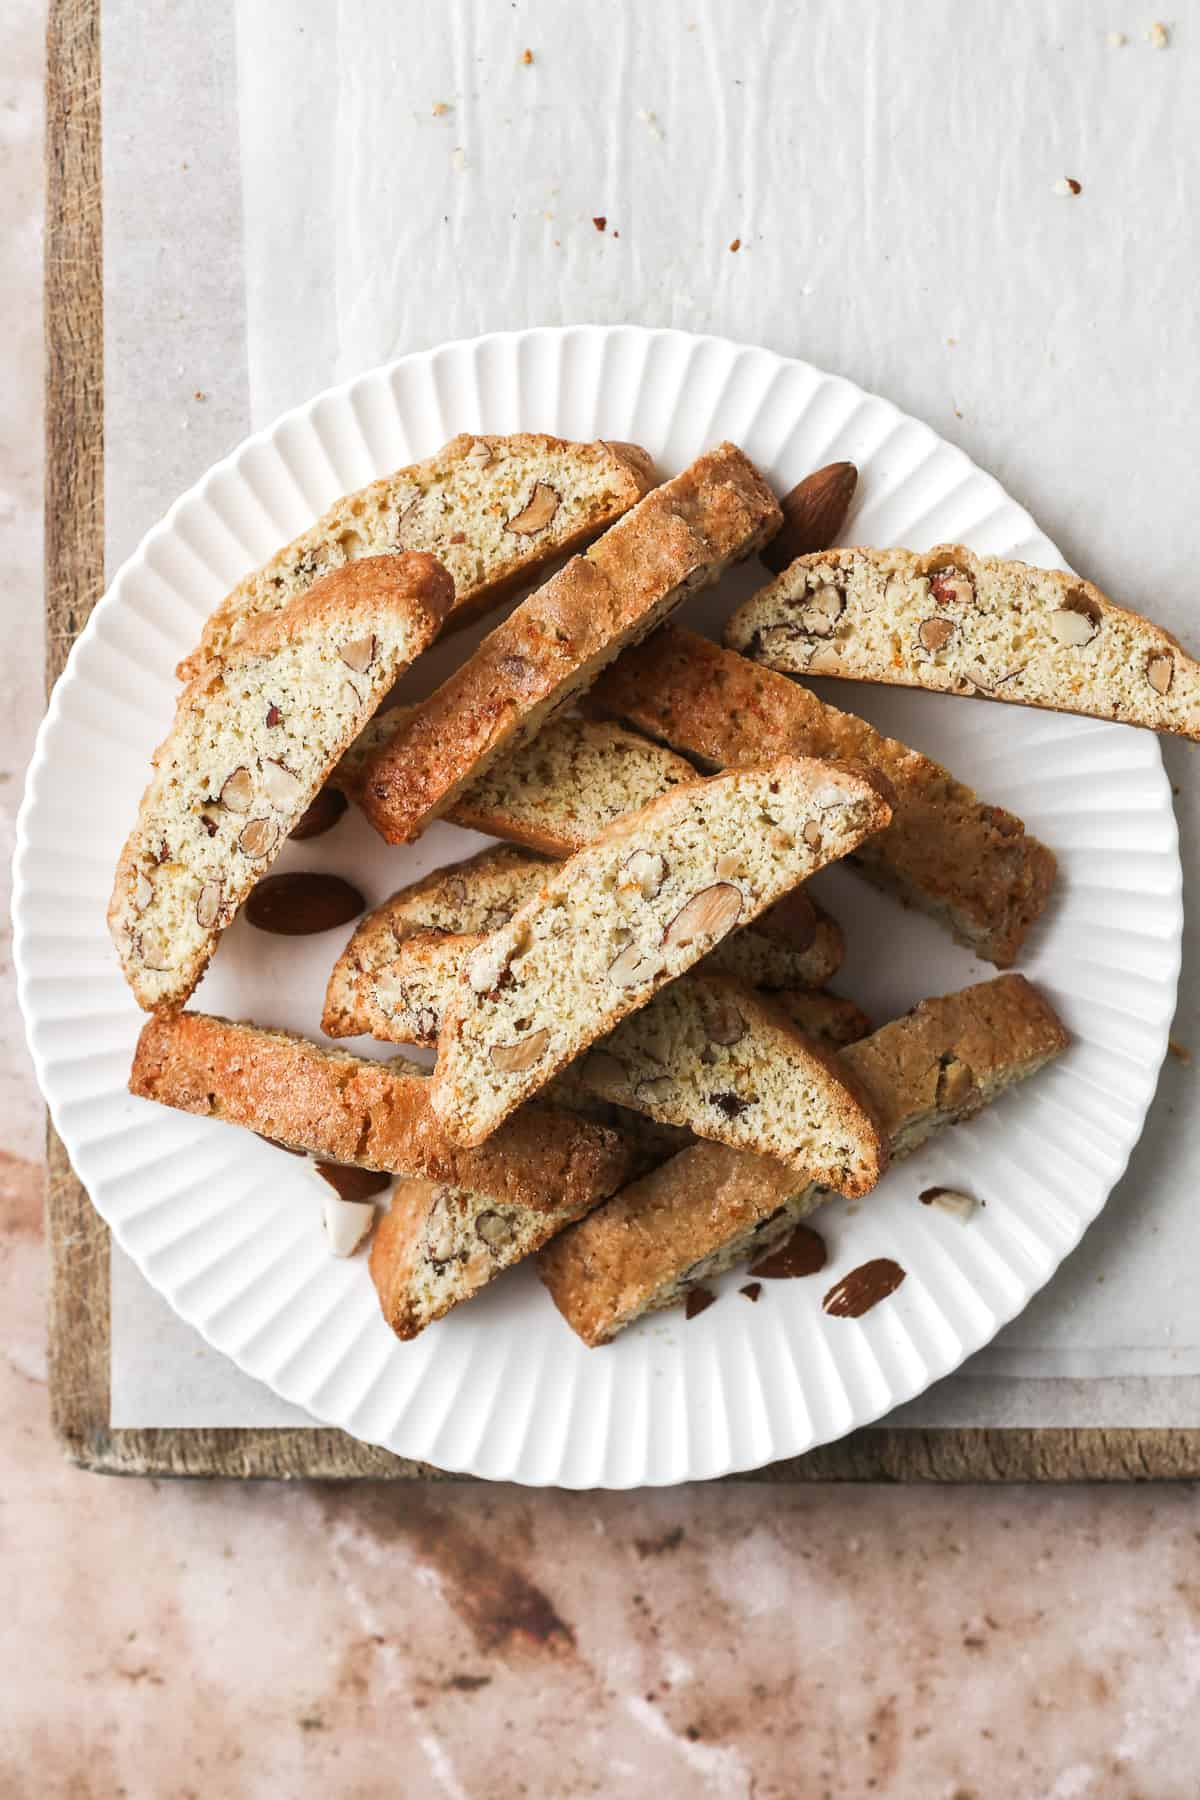 Classic almond biscotti piled on a scalloped plate